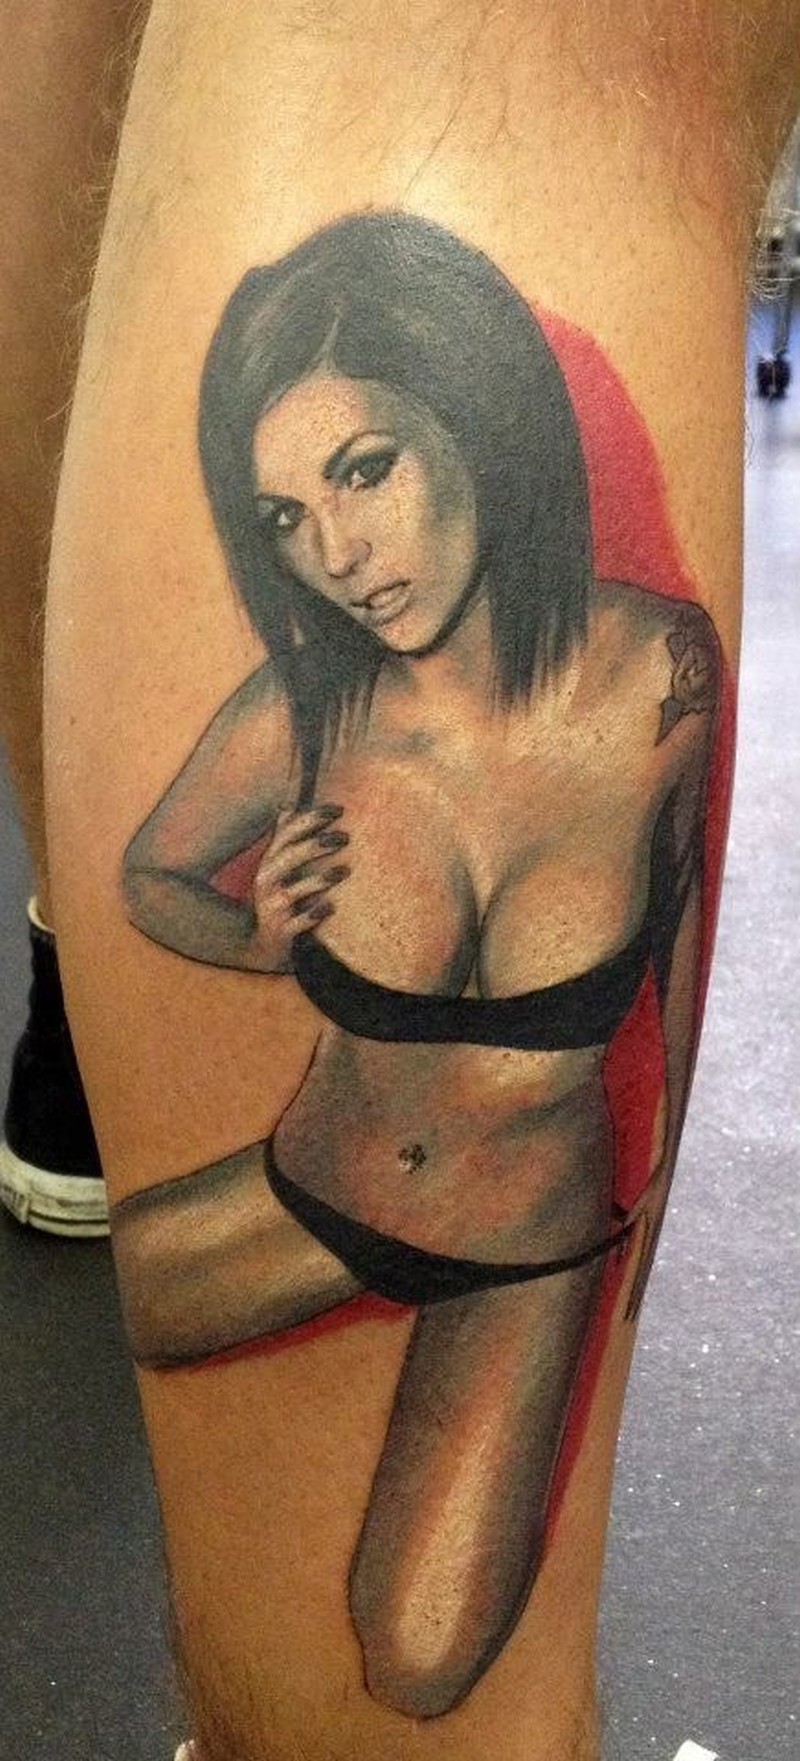 6ce237b2f Sexy girl in black lingerie by Adam Kremer tattoo - Tattoos Book ...